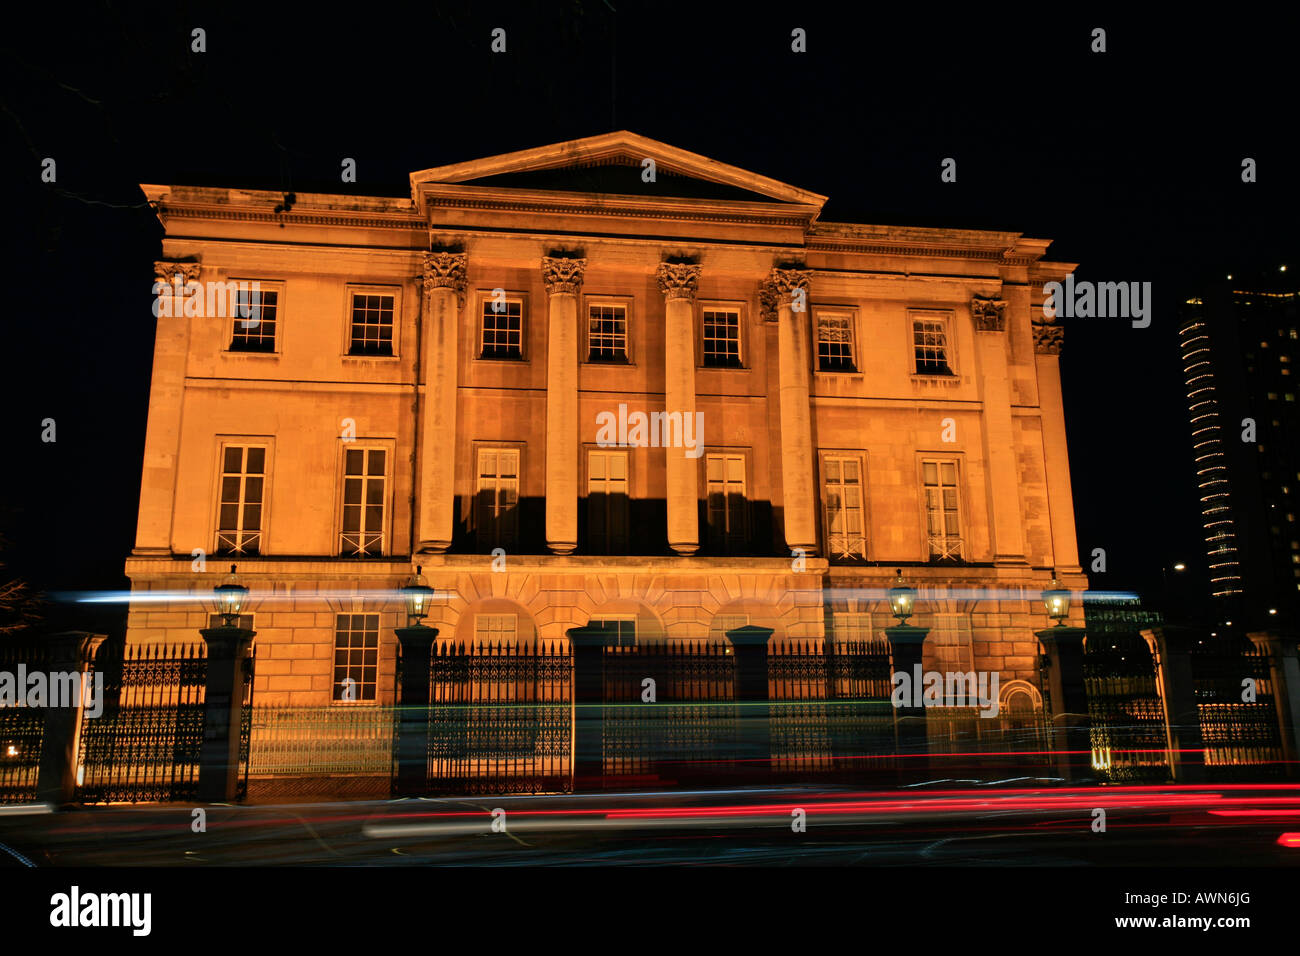 Apsley House, 149 Piccadilly, on Hyde Park Corner, London, UK - Stock Image